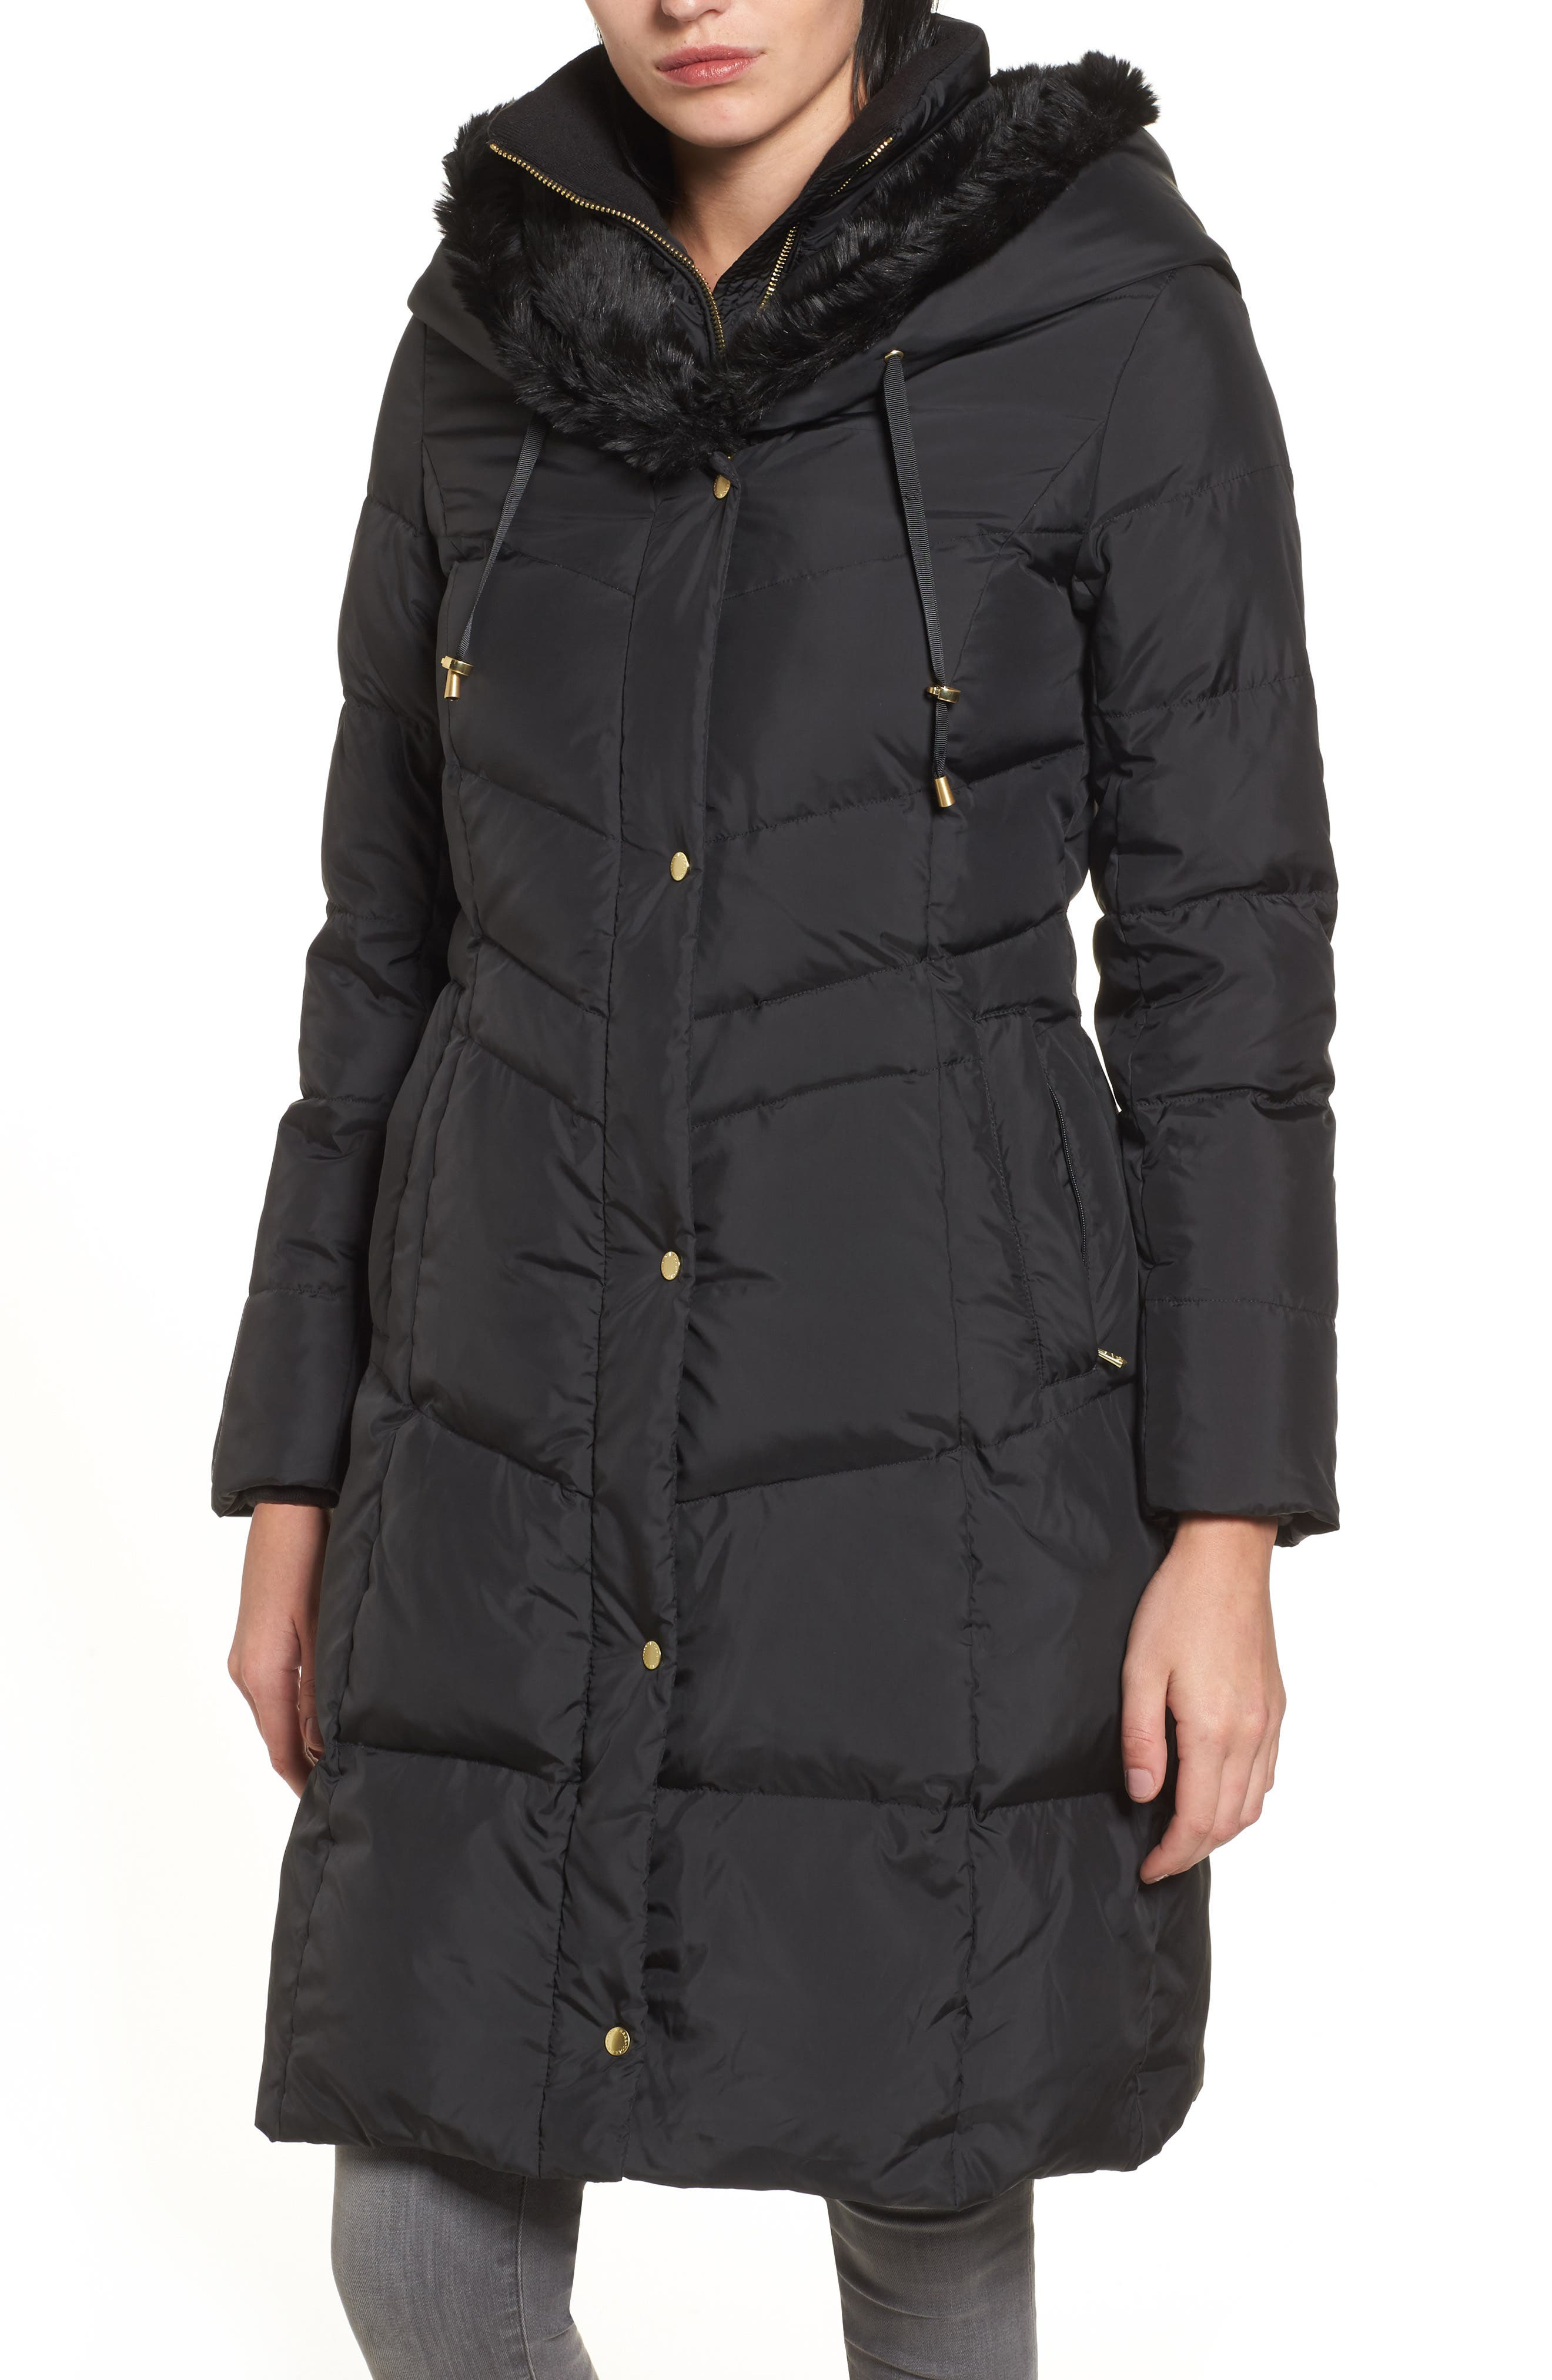 Main Image - Cole Haan 3/4 Down Coat with Faux Fur Hood